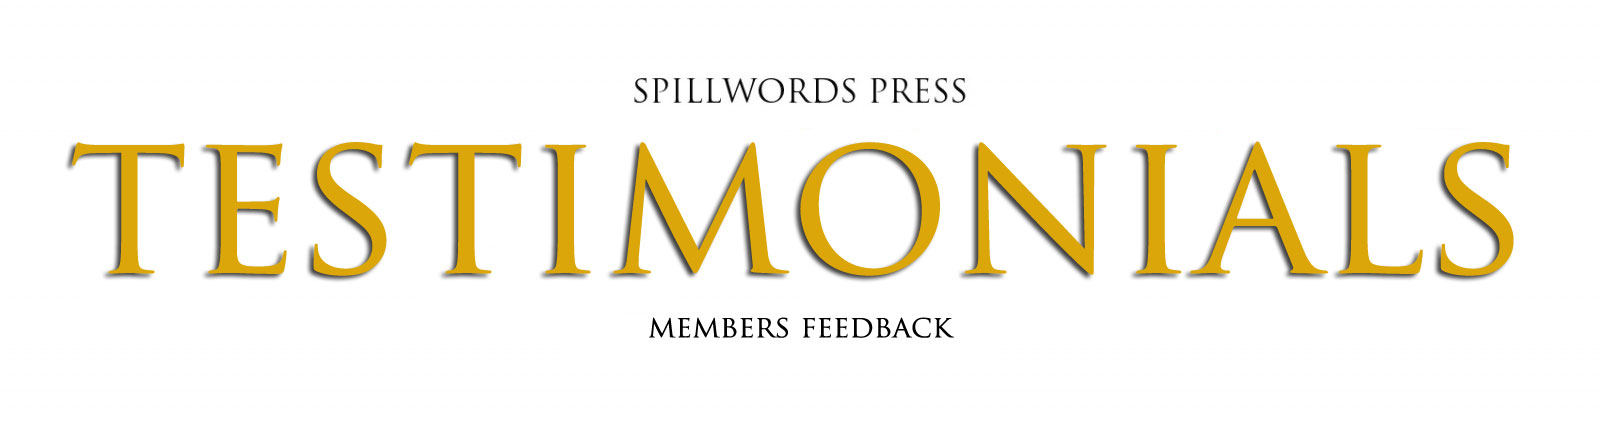 Spillwords Press Members Testimonials at Spillwords.com